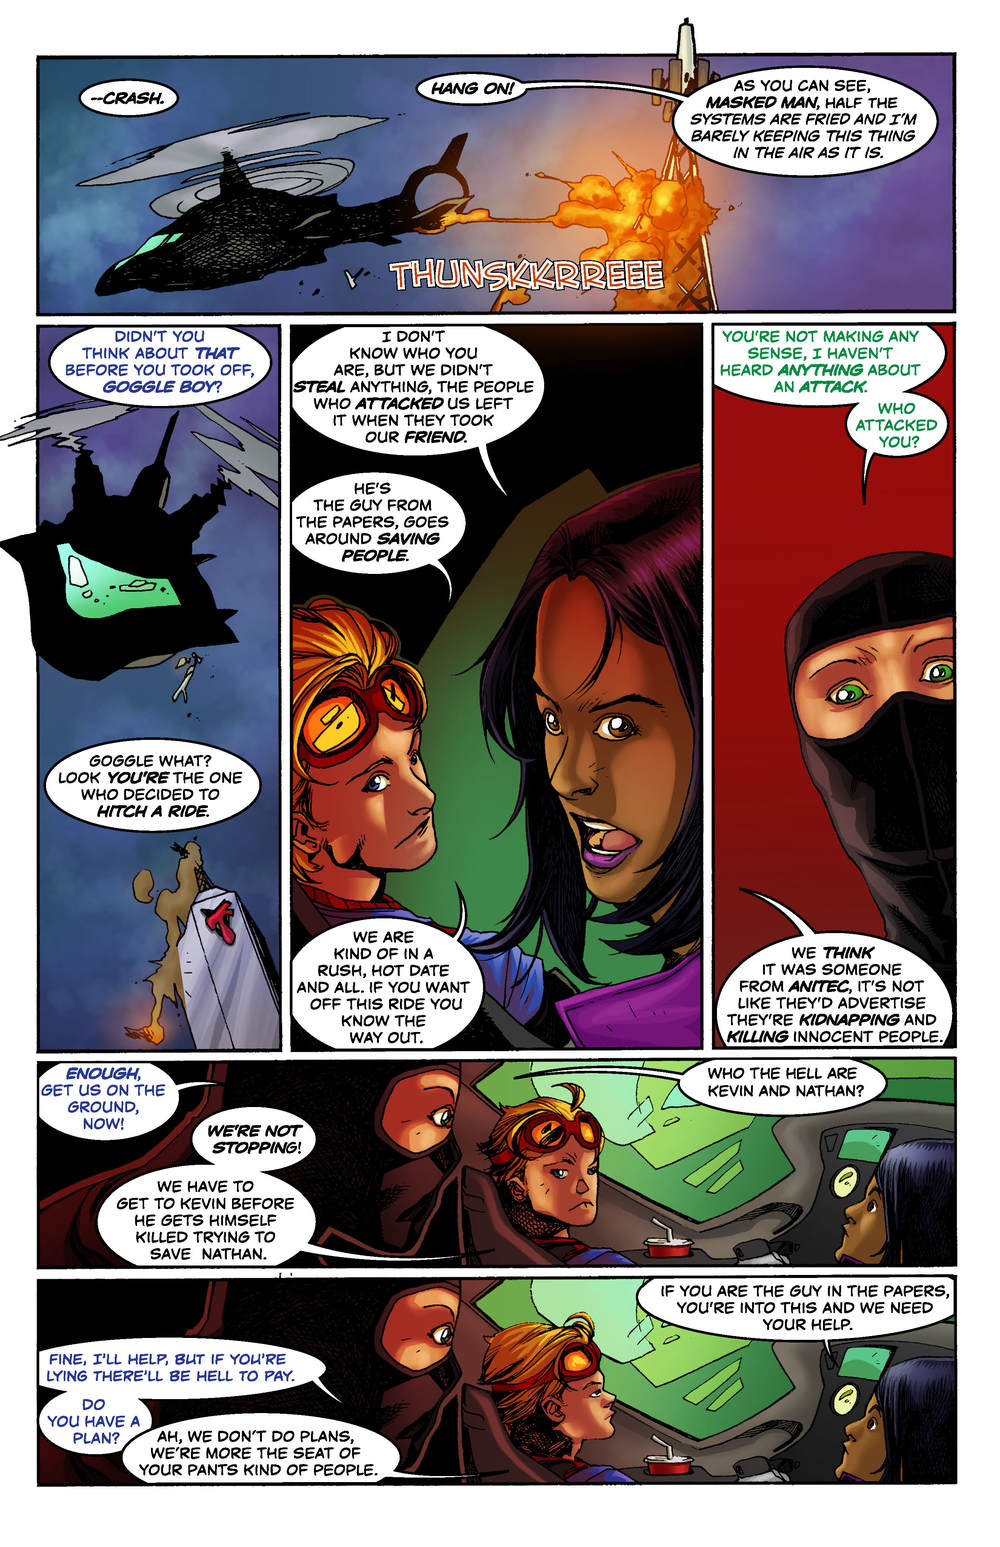 TT_Issue04_Digital_Page_21.jpg